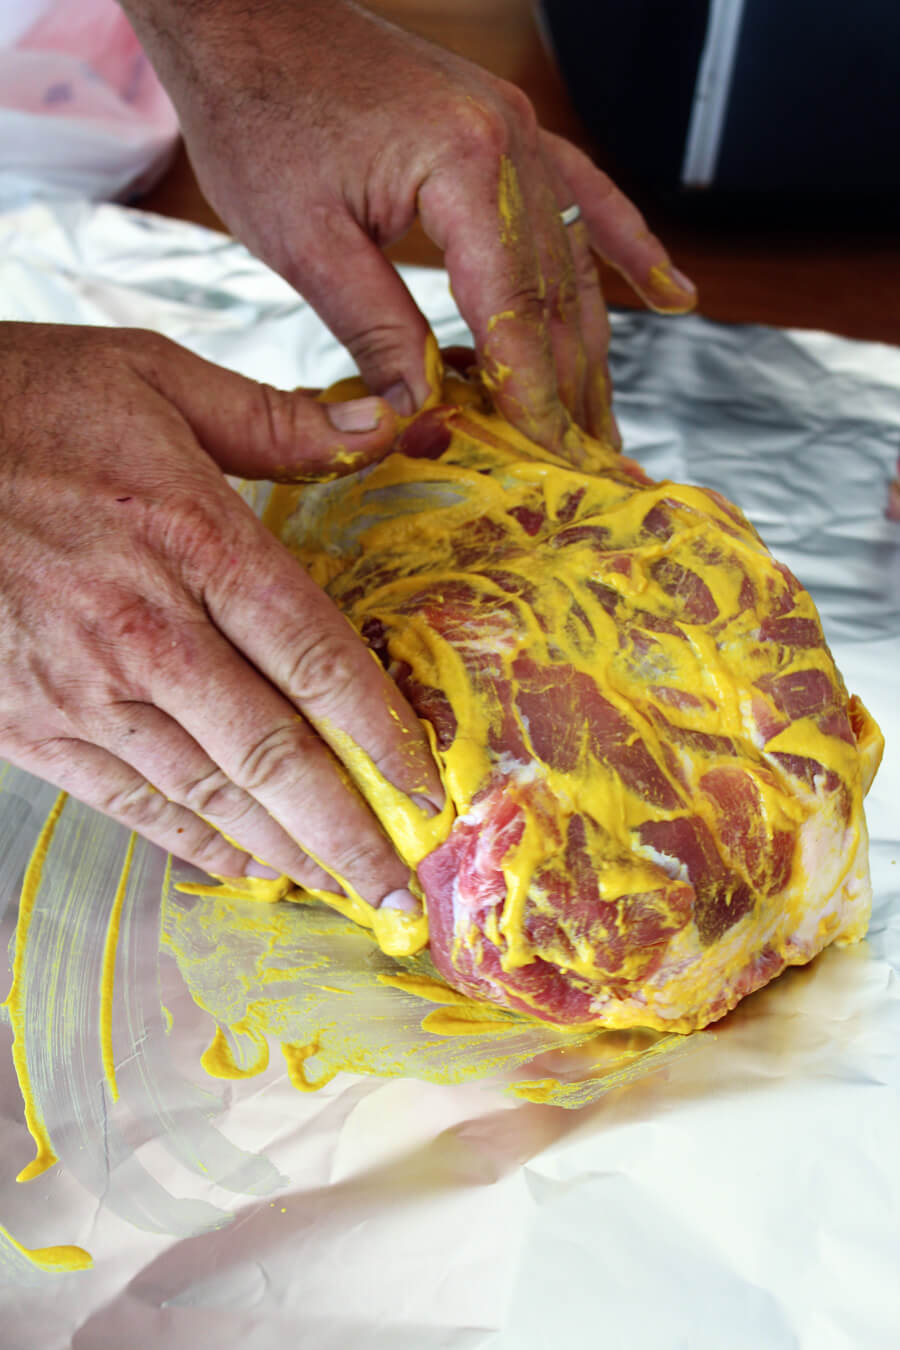 pork butt being rubbed with prepared yellow mustard